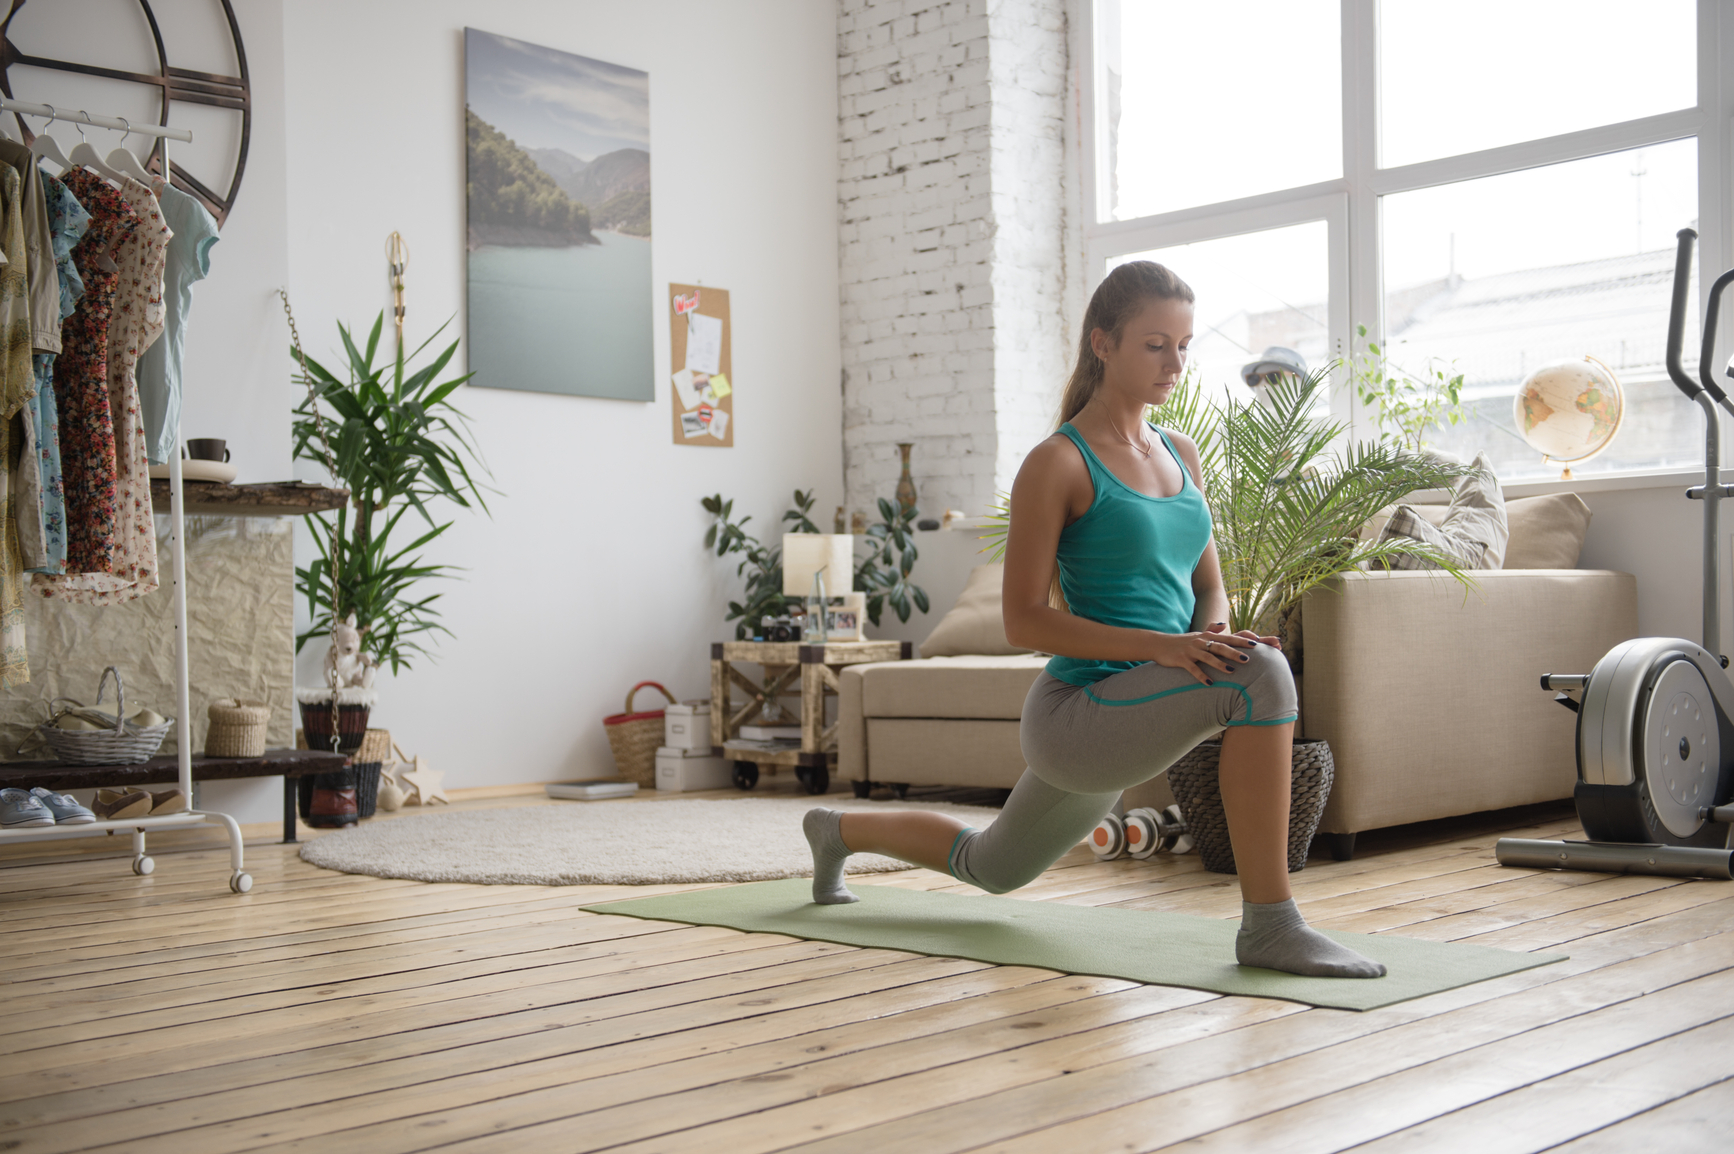 http://blog.zenward.com/practice-yoga-home-tips/